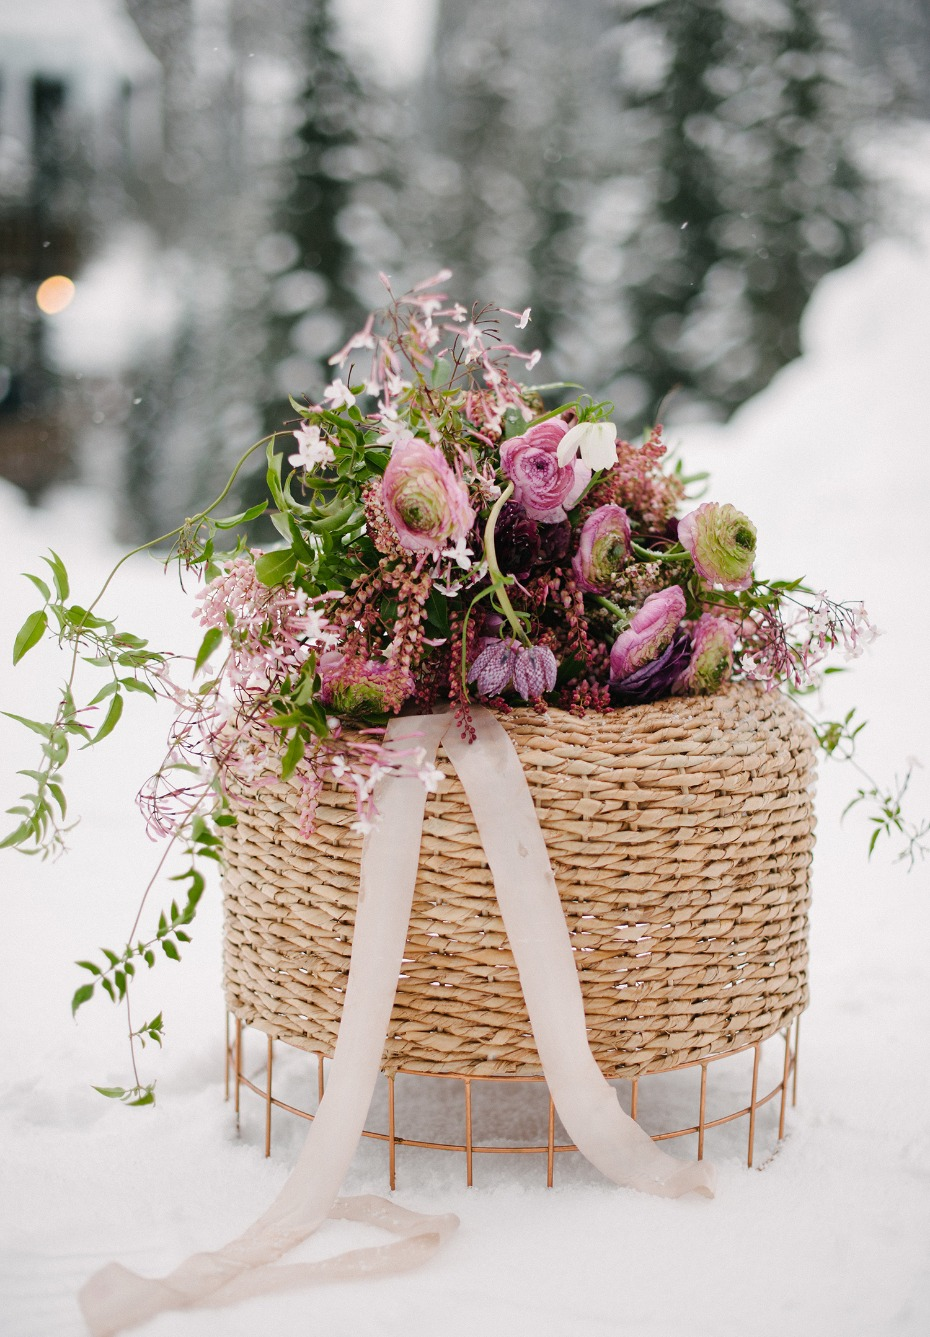 alternative winter wedding ideas